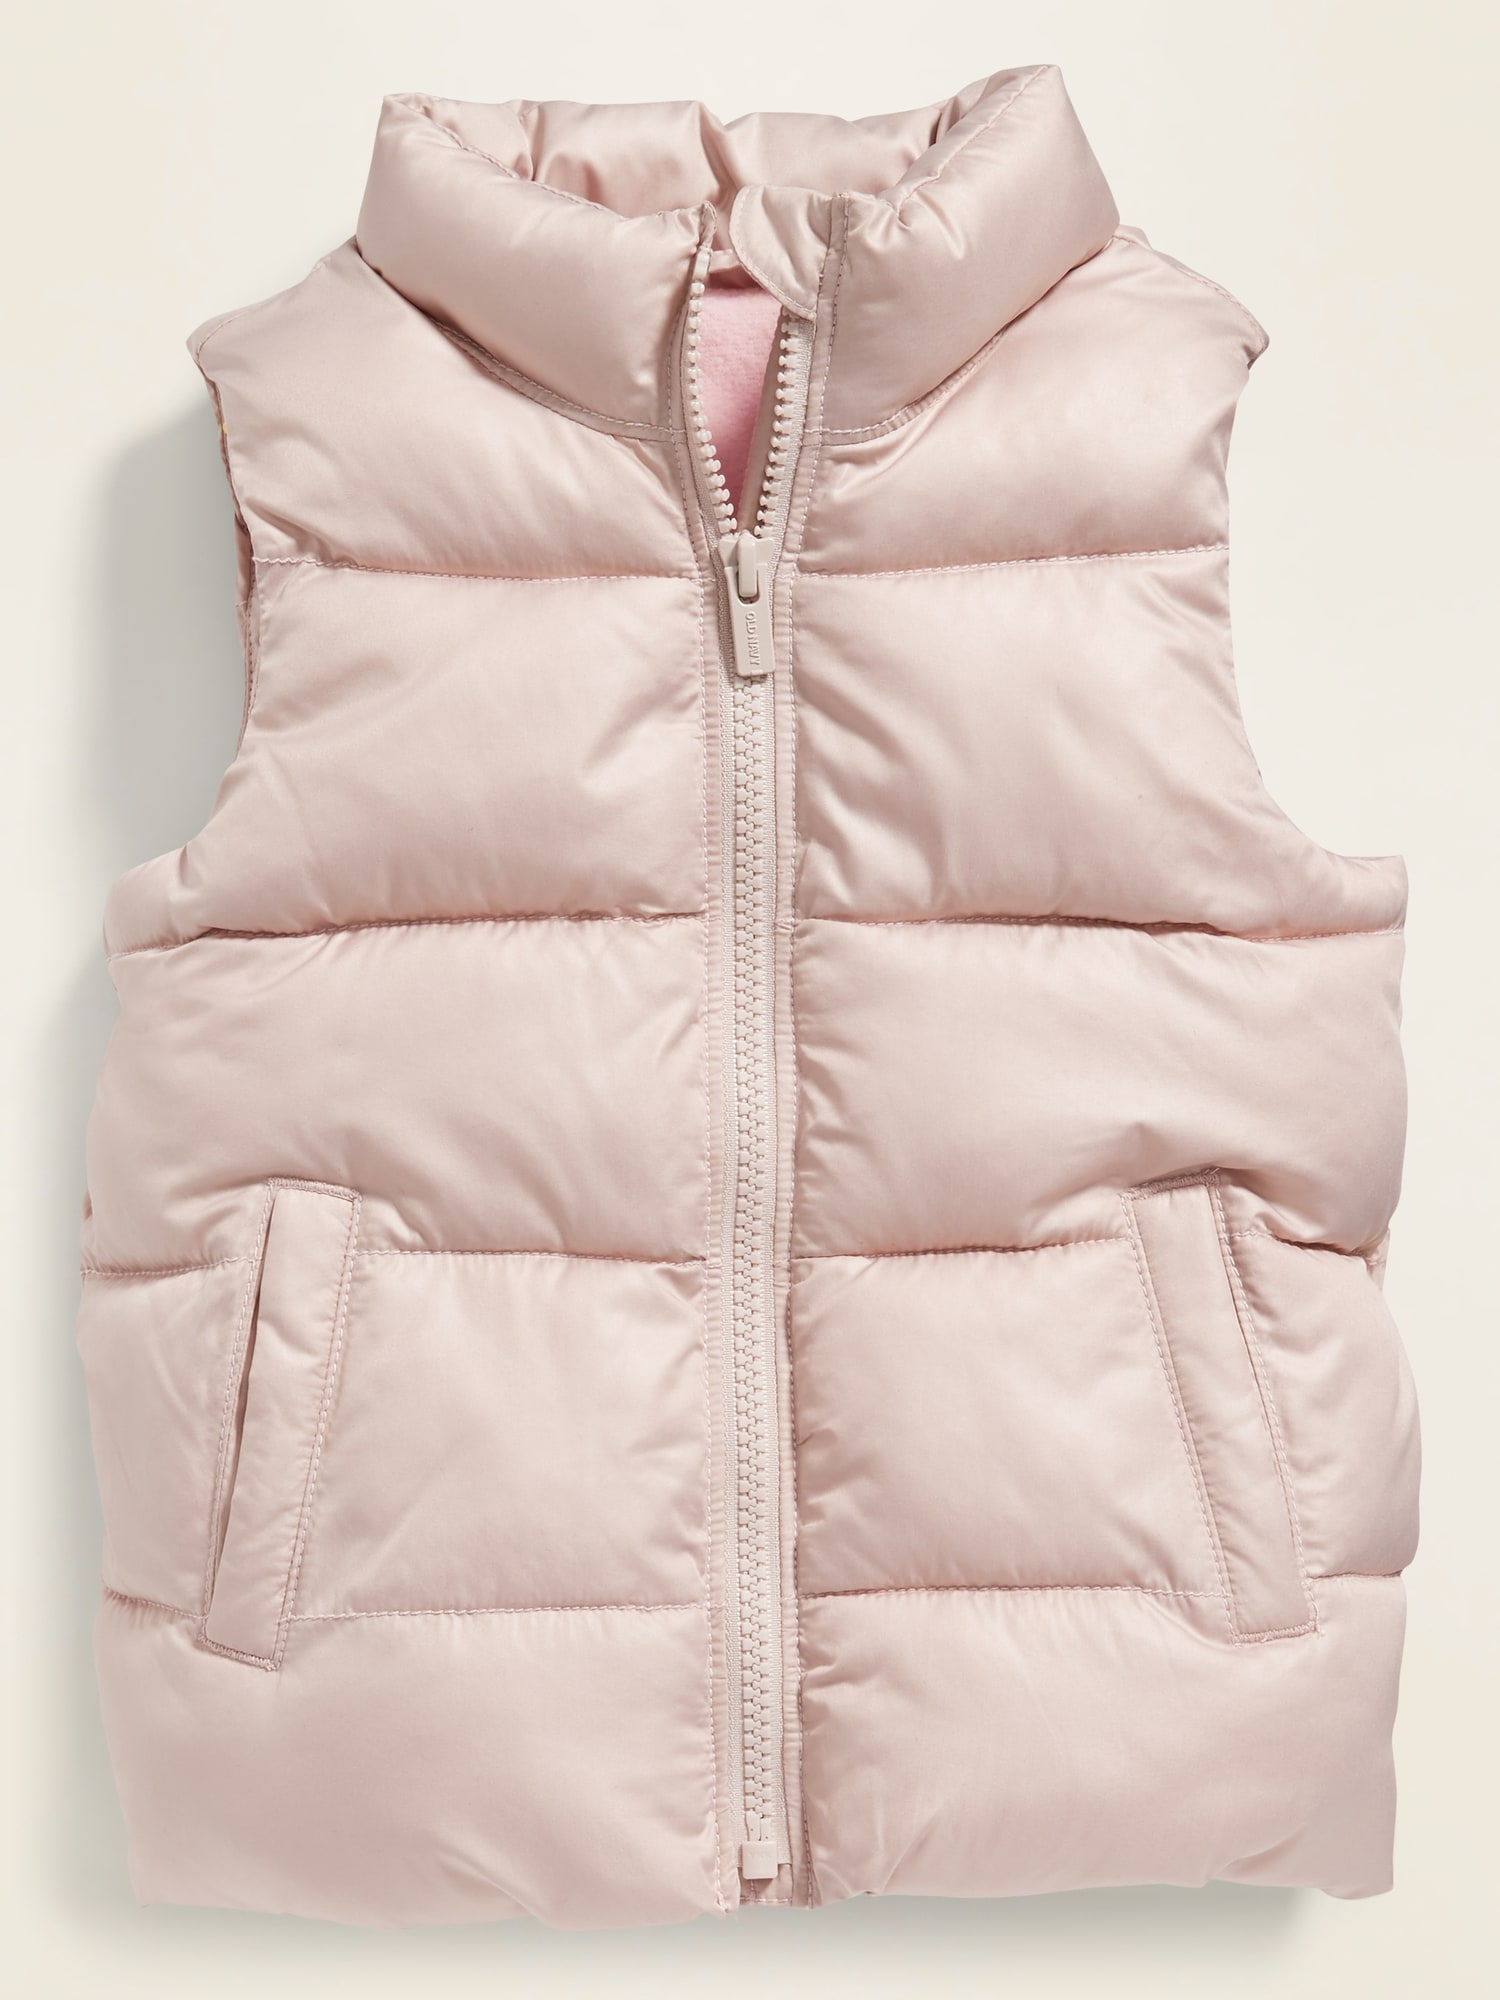 2 available twins Old Navy girls puffer vest sz 3T